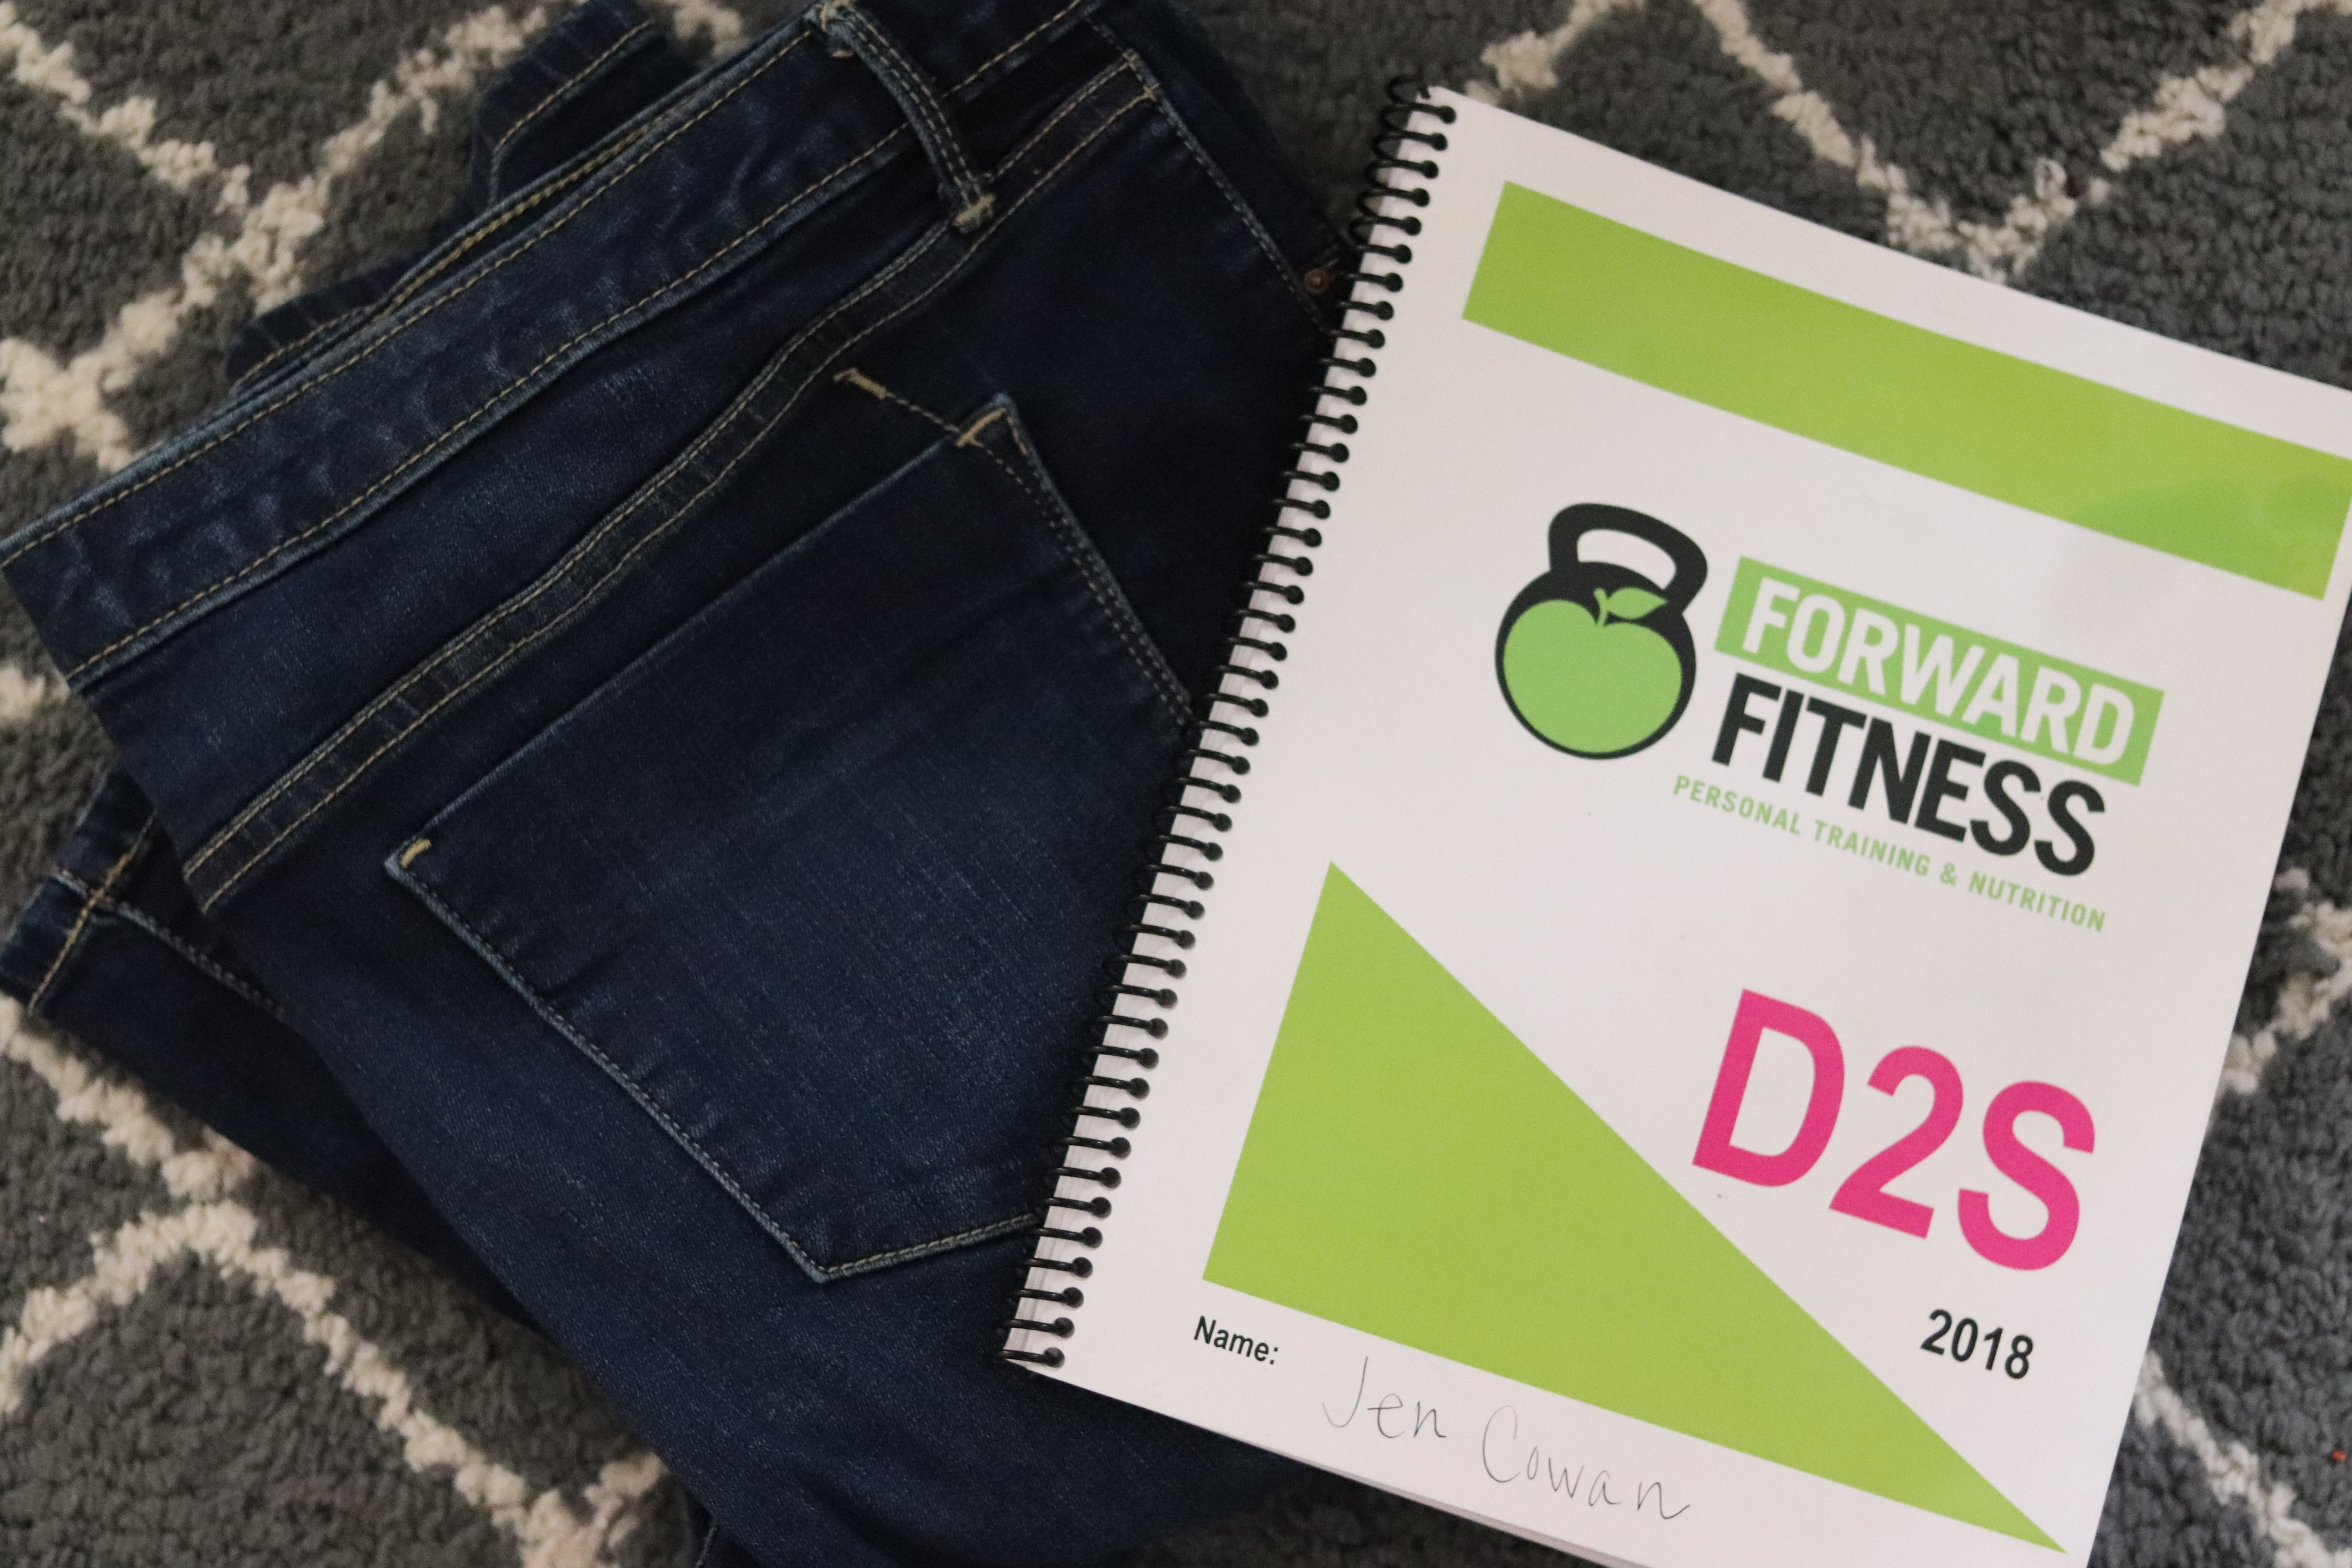 Forward Fitness Drop 2 Pants Sizes Challenge 1